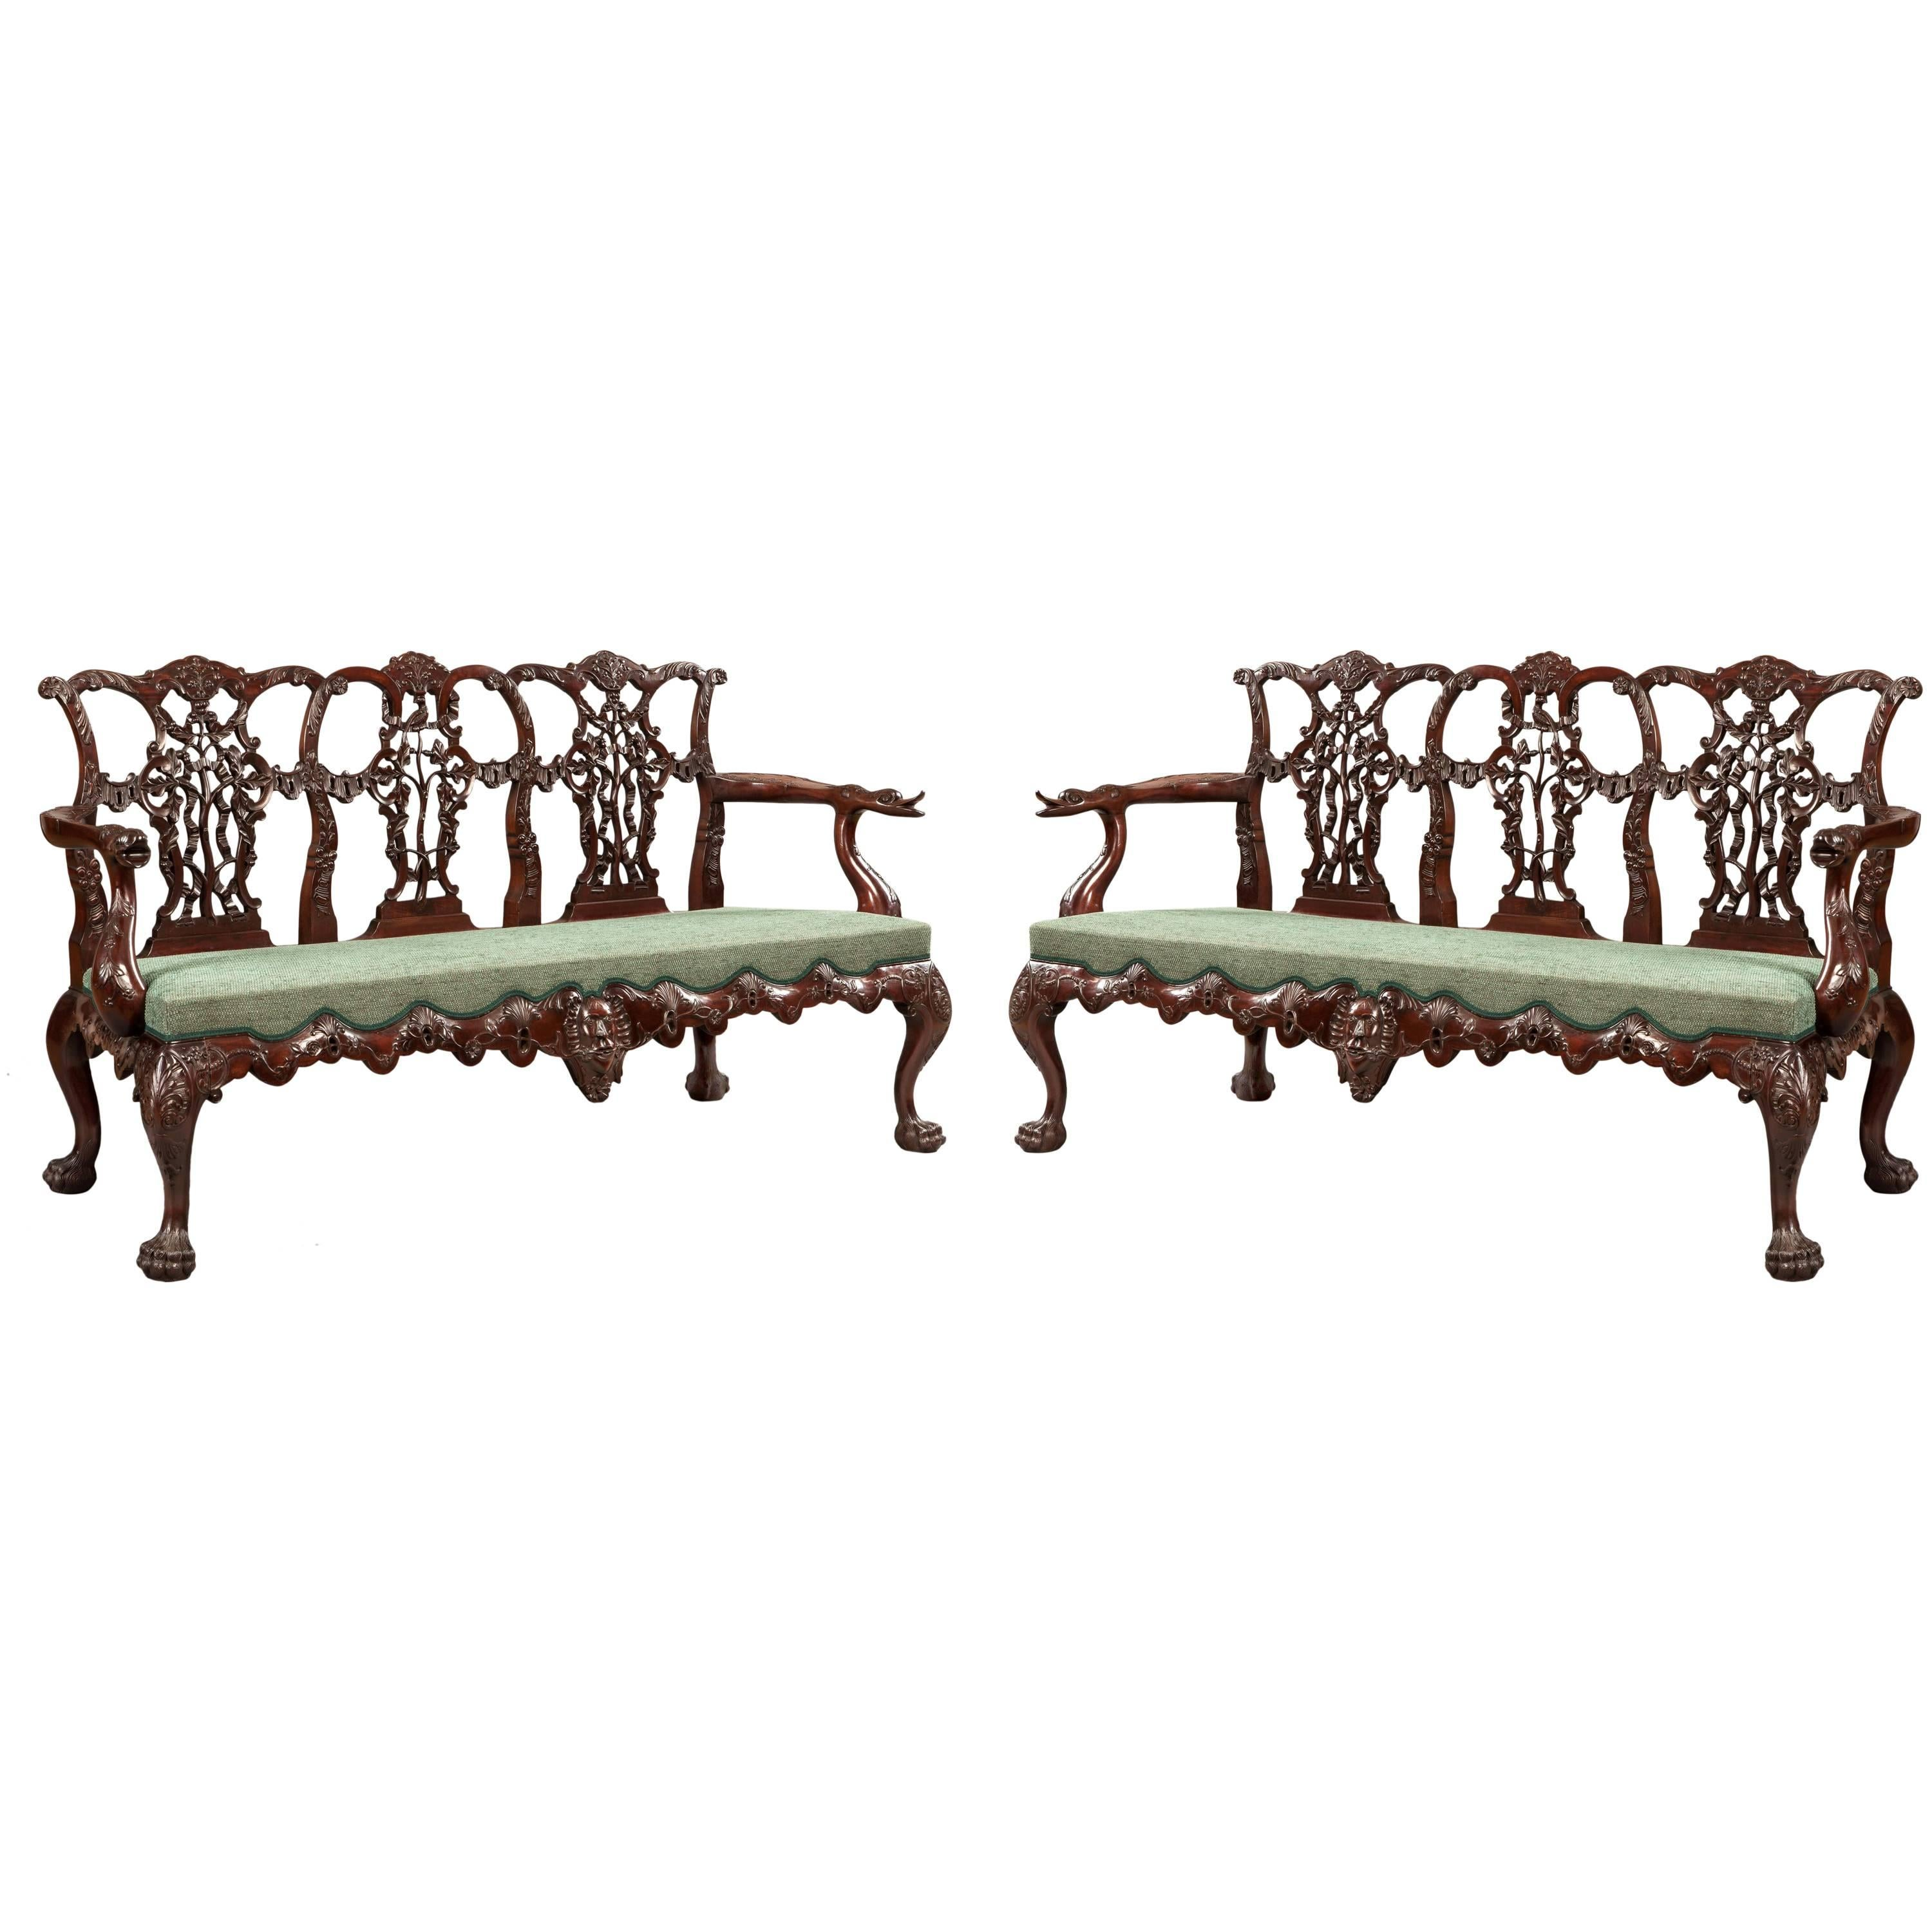 Pair of Antique Carved Mahogany Settee's in the Chippendale Manner